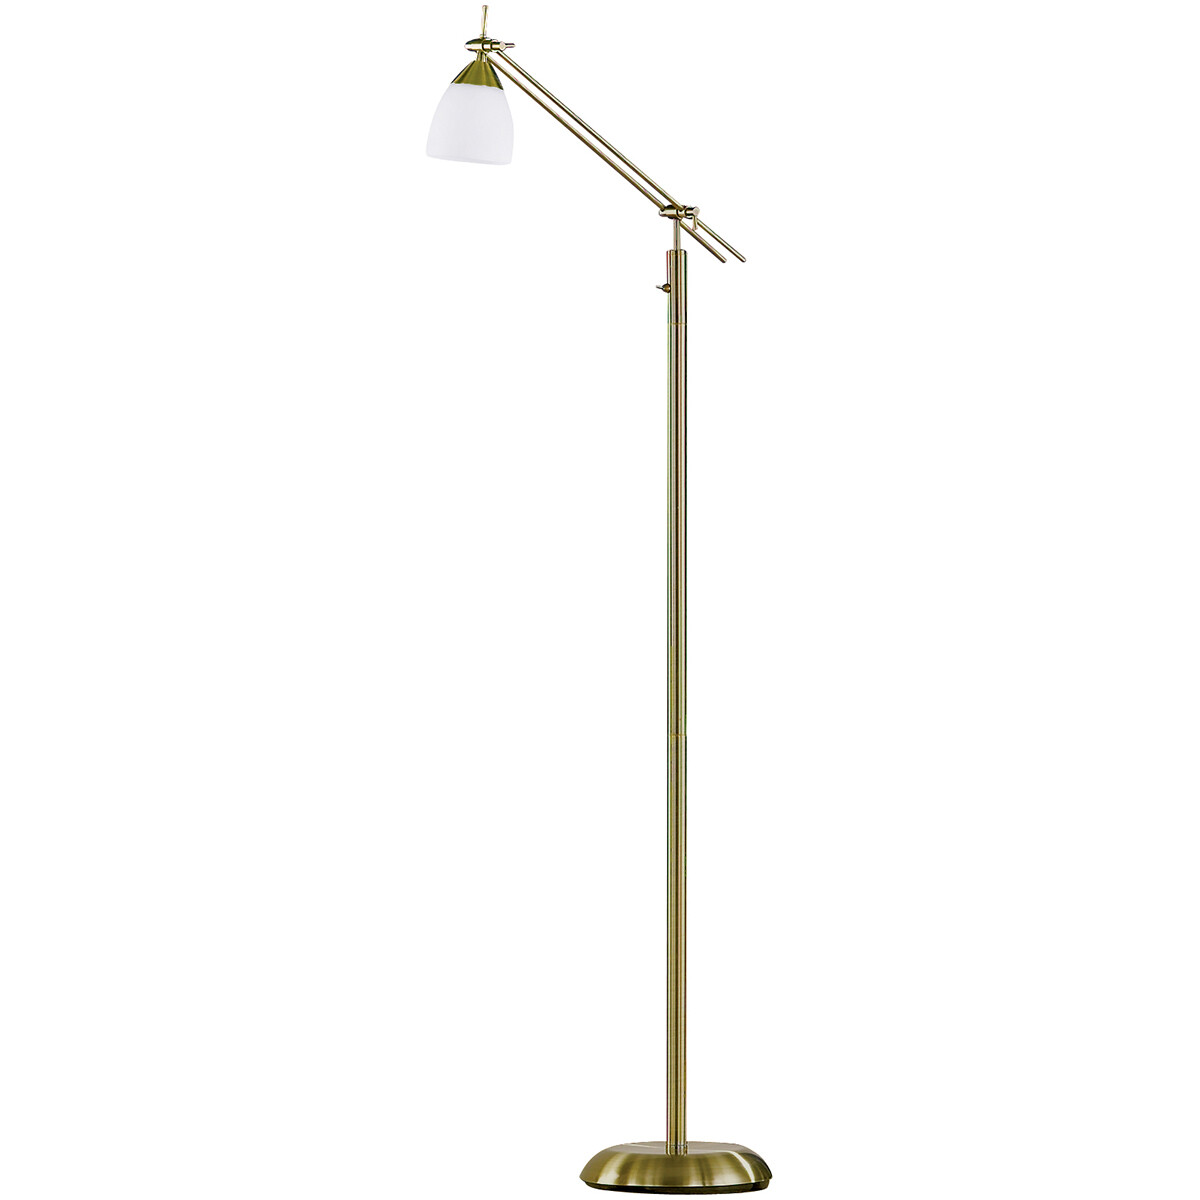 LED Vloerlamp - Trion Ican - E27 Fitting - Rond - Oud Brons - Aluminium